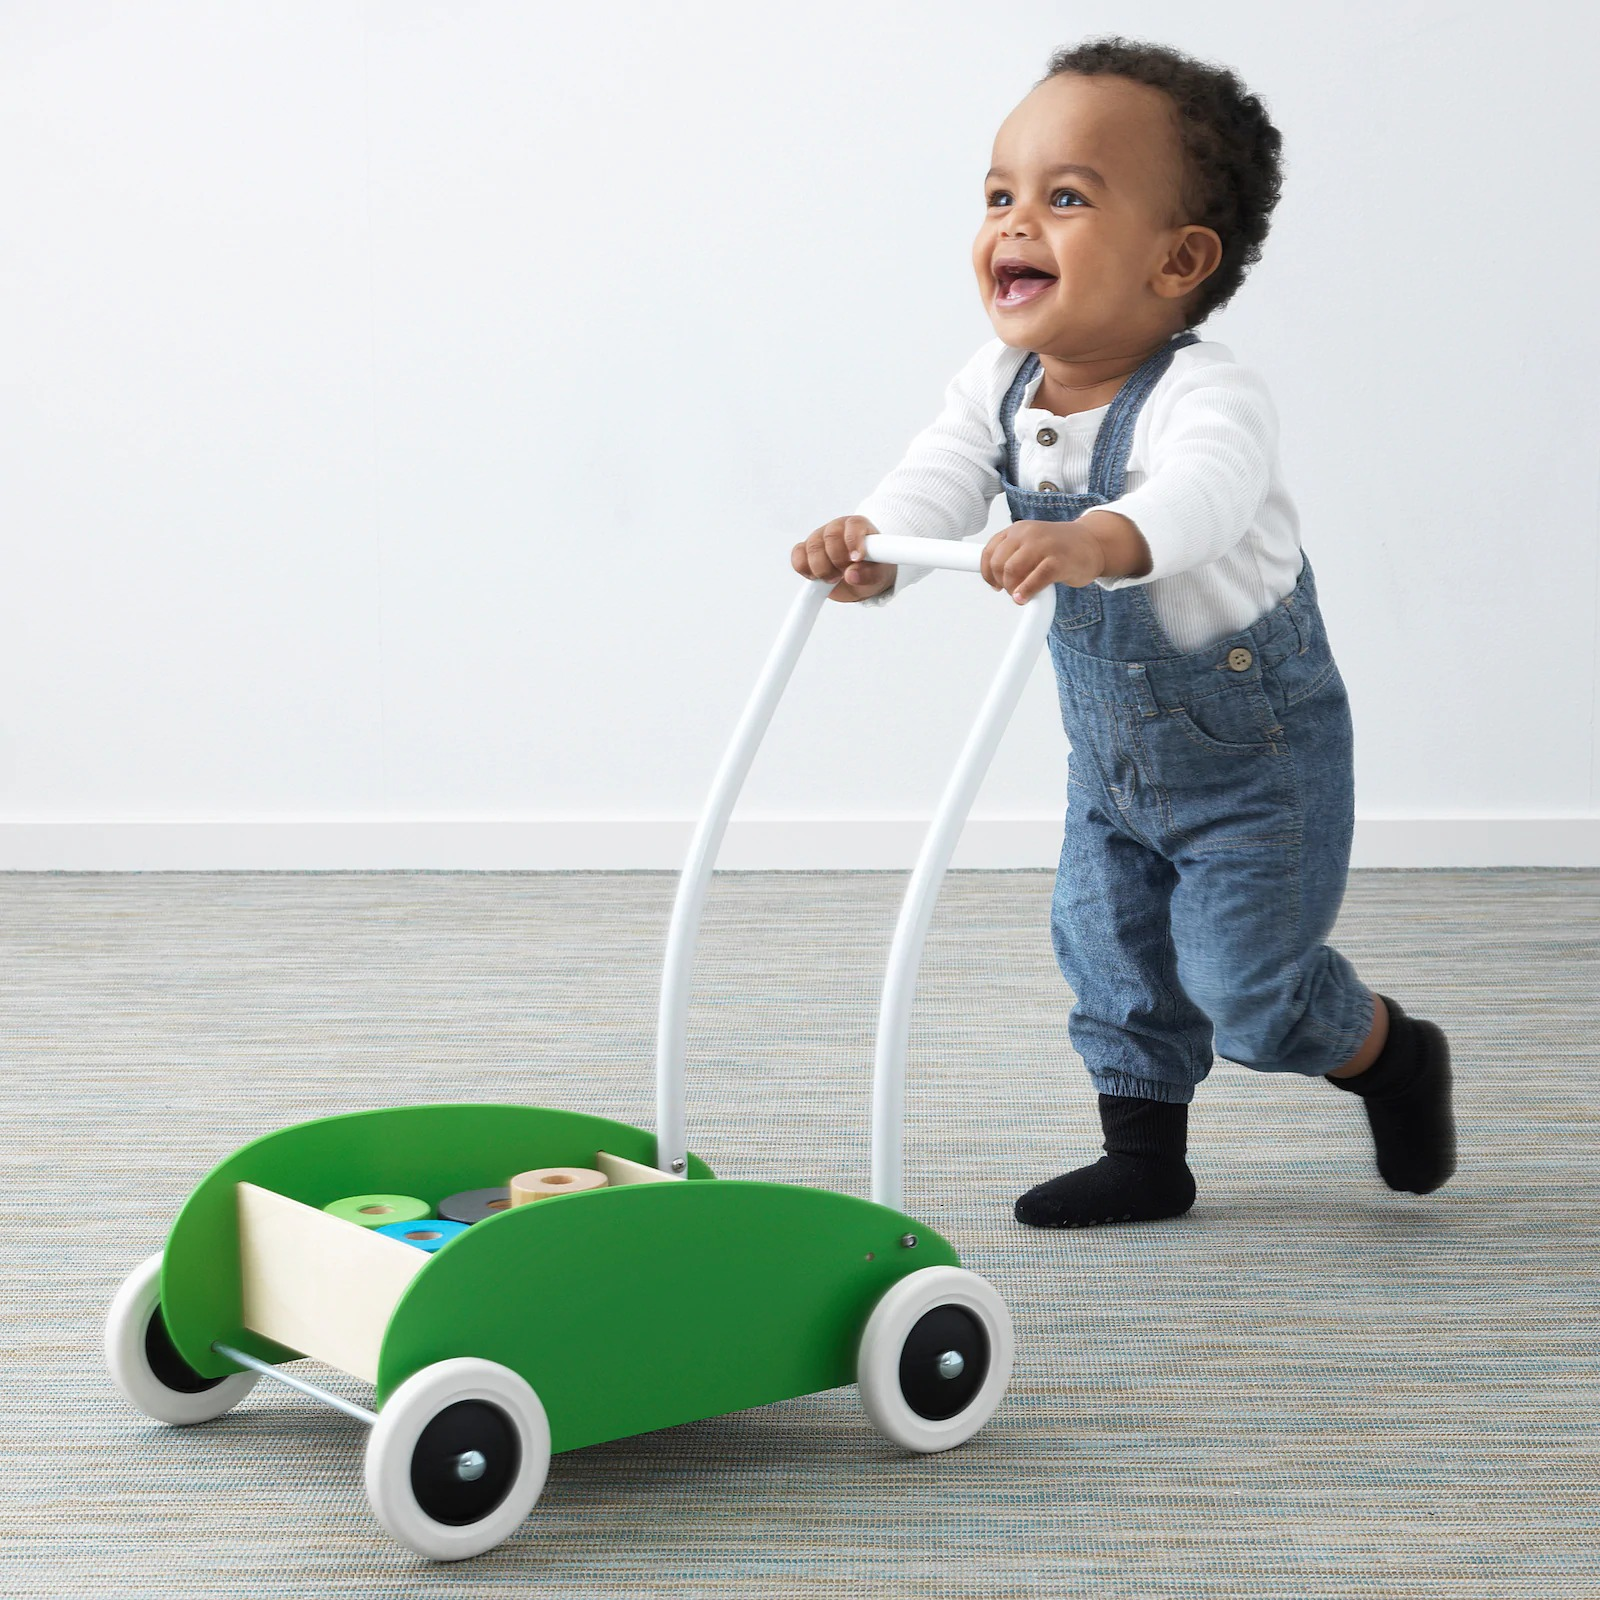 Ikea-mula-toddle-wagon-walker-green-with-toddler-using-it